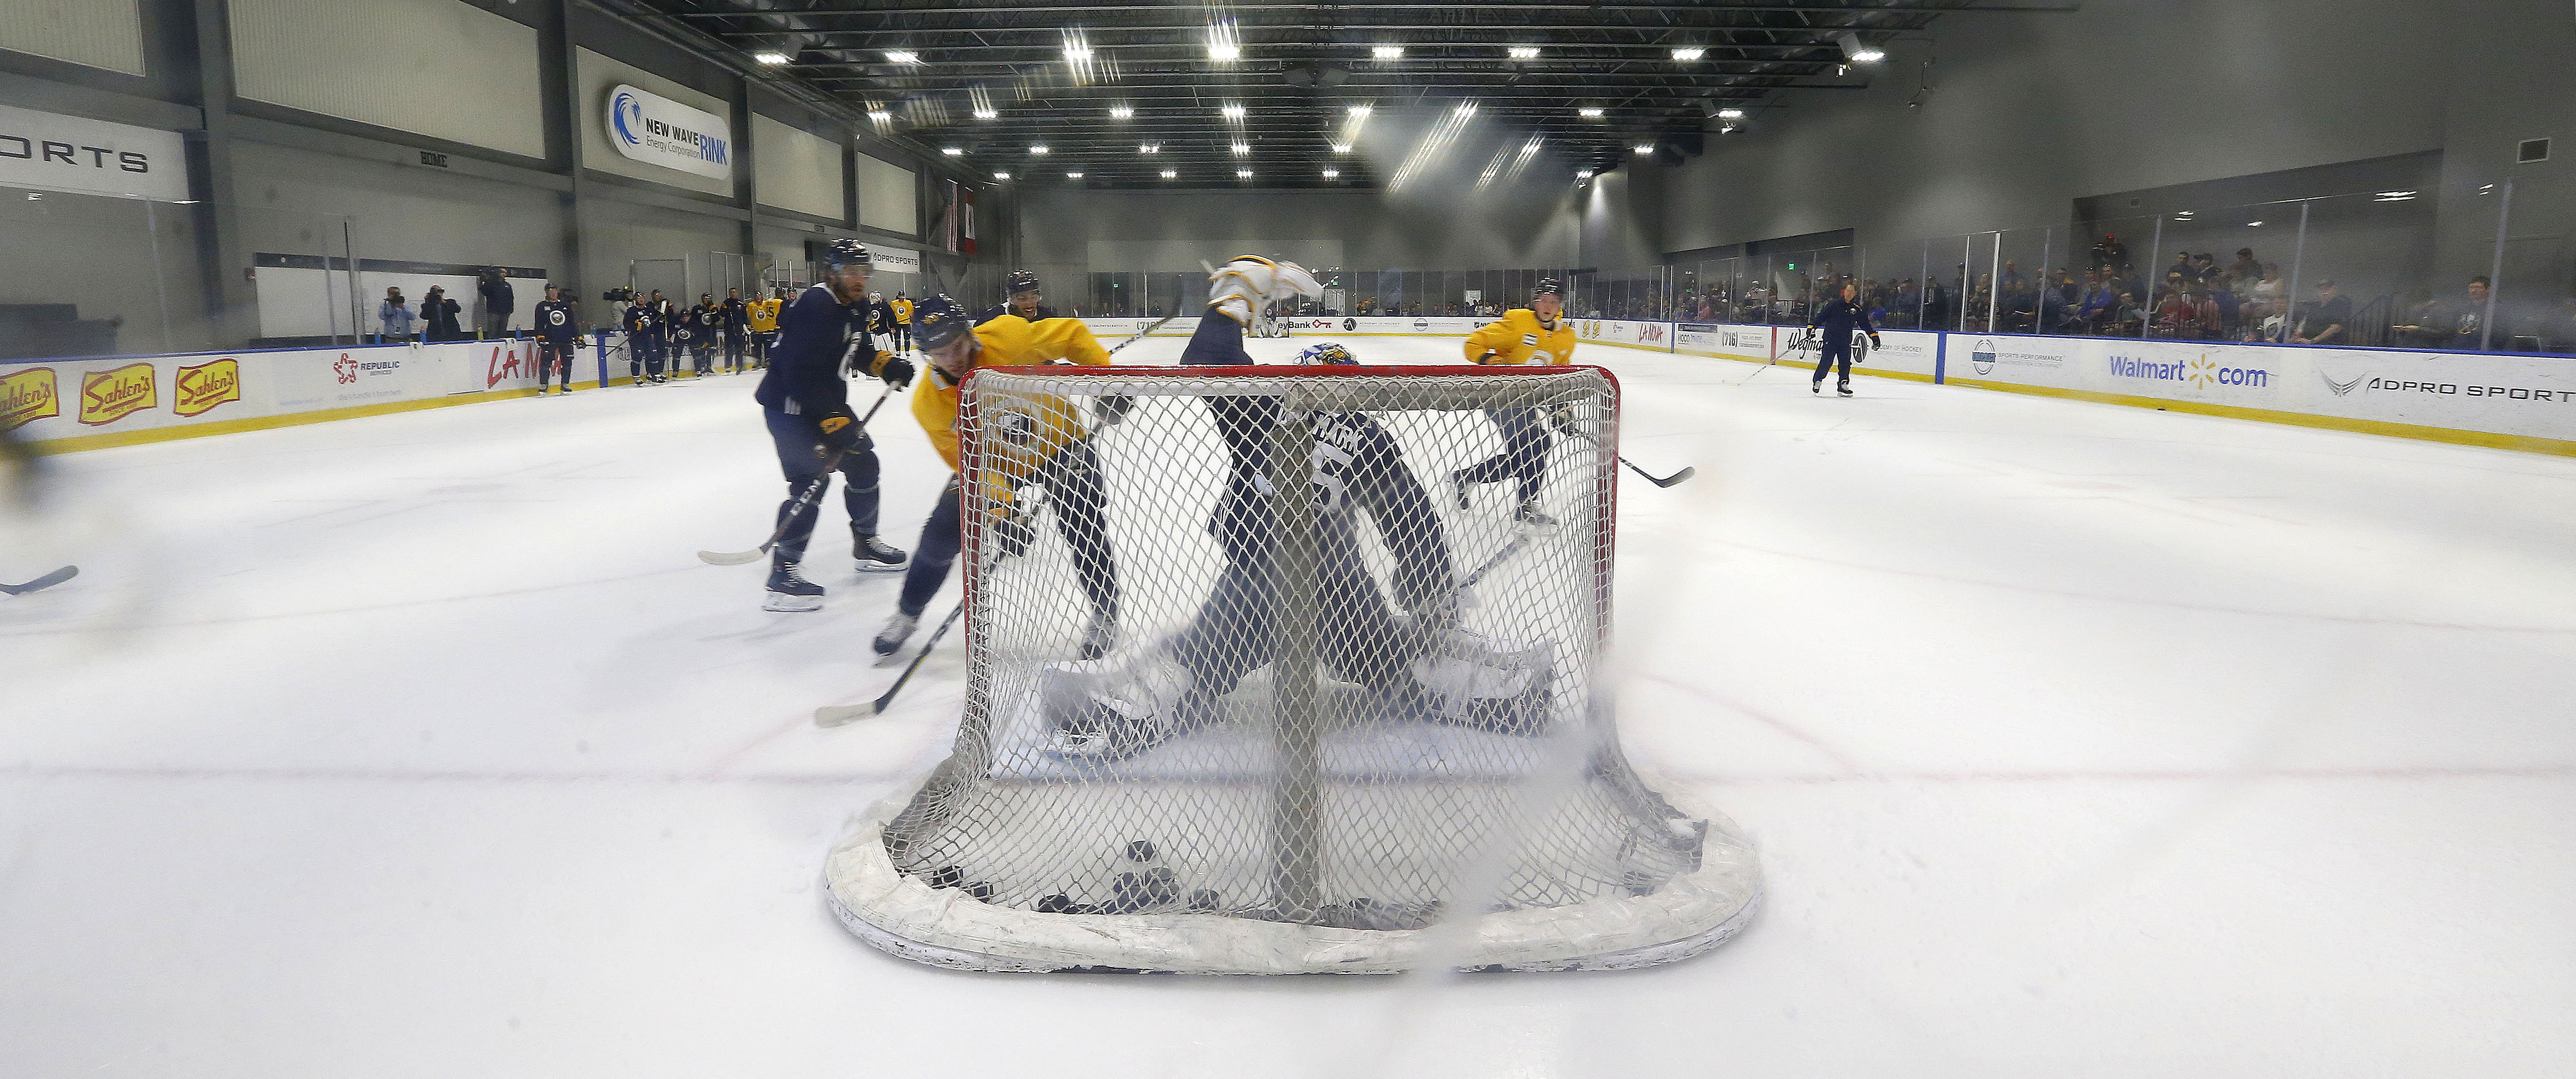 Goalie Linus Ullmark makes a save during the first day of on-ice drills at HarborCenter on Sept. 14. (Mark Mulville/Buffalo News)